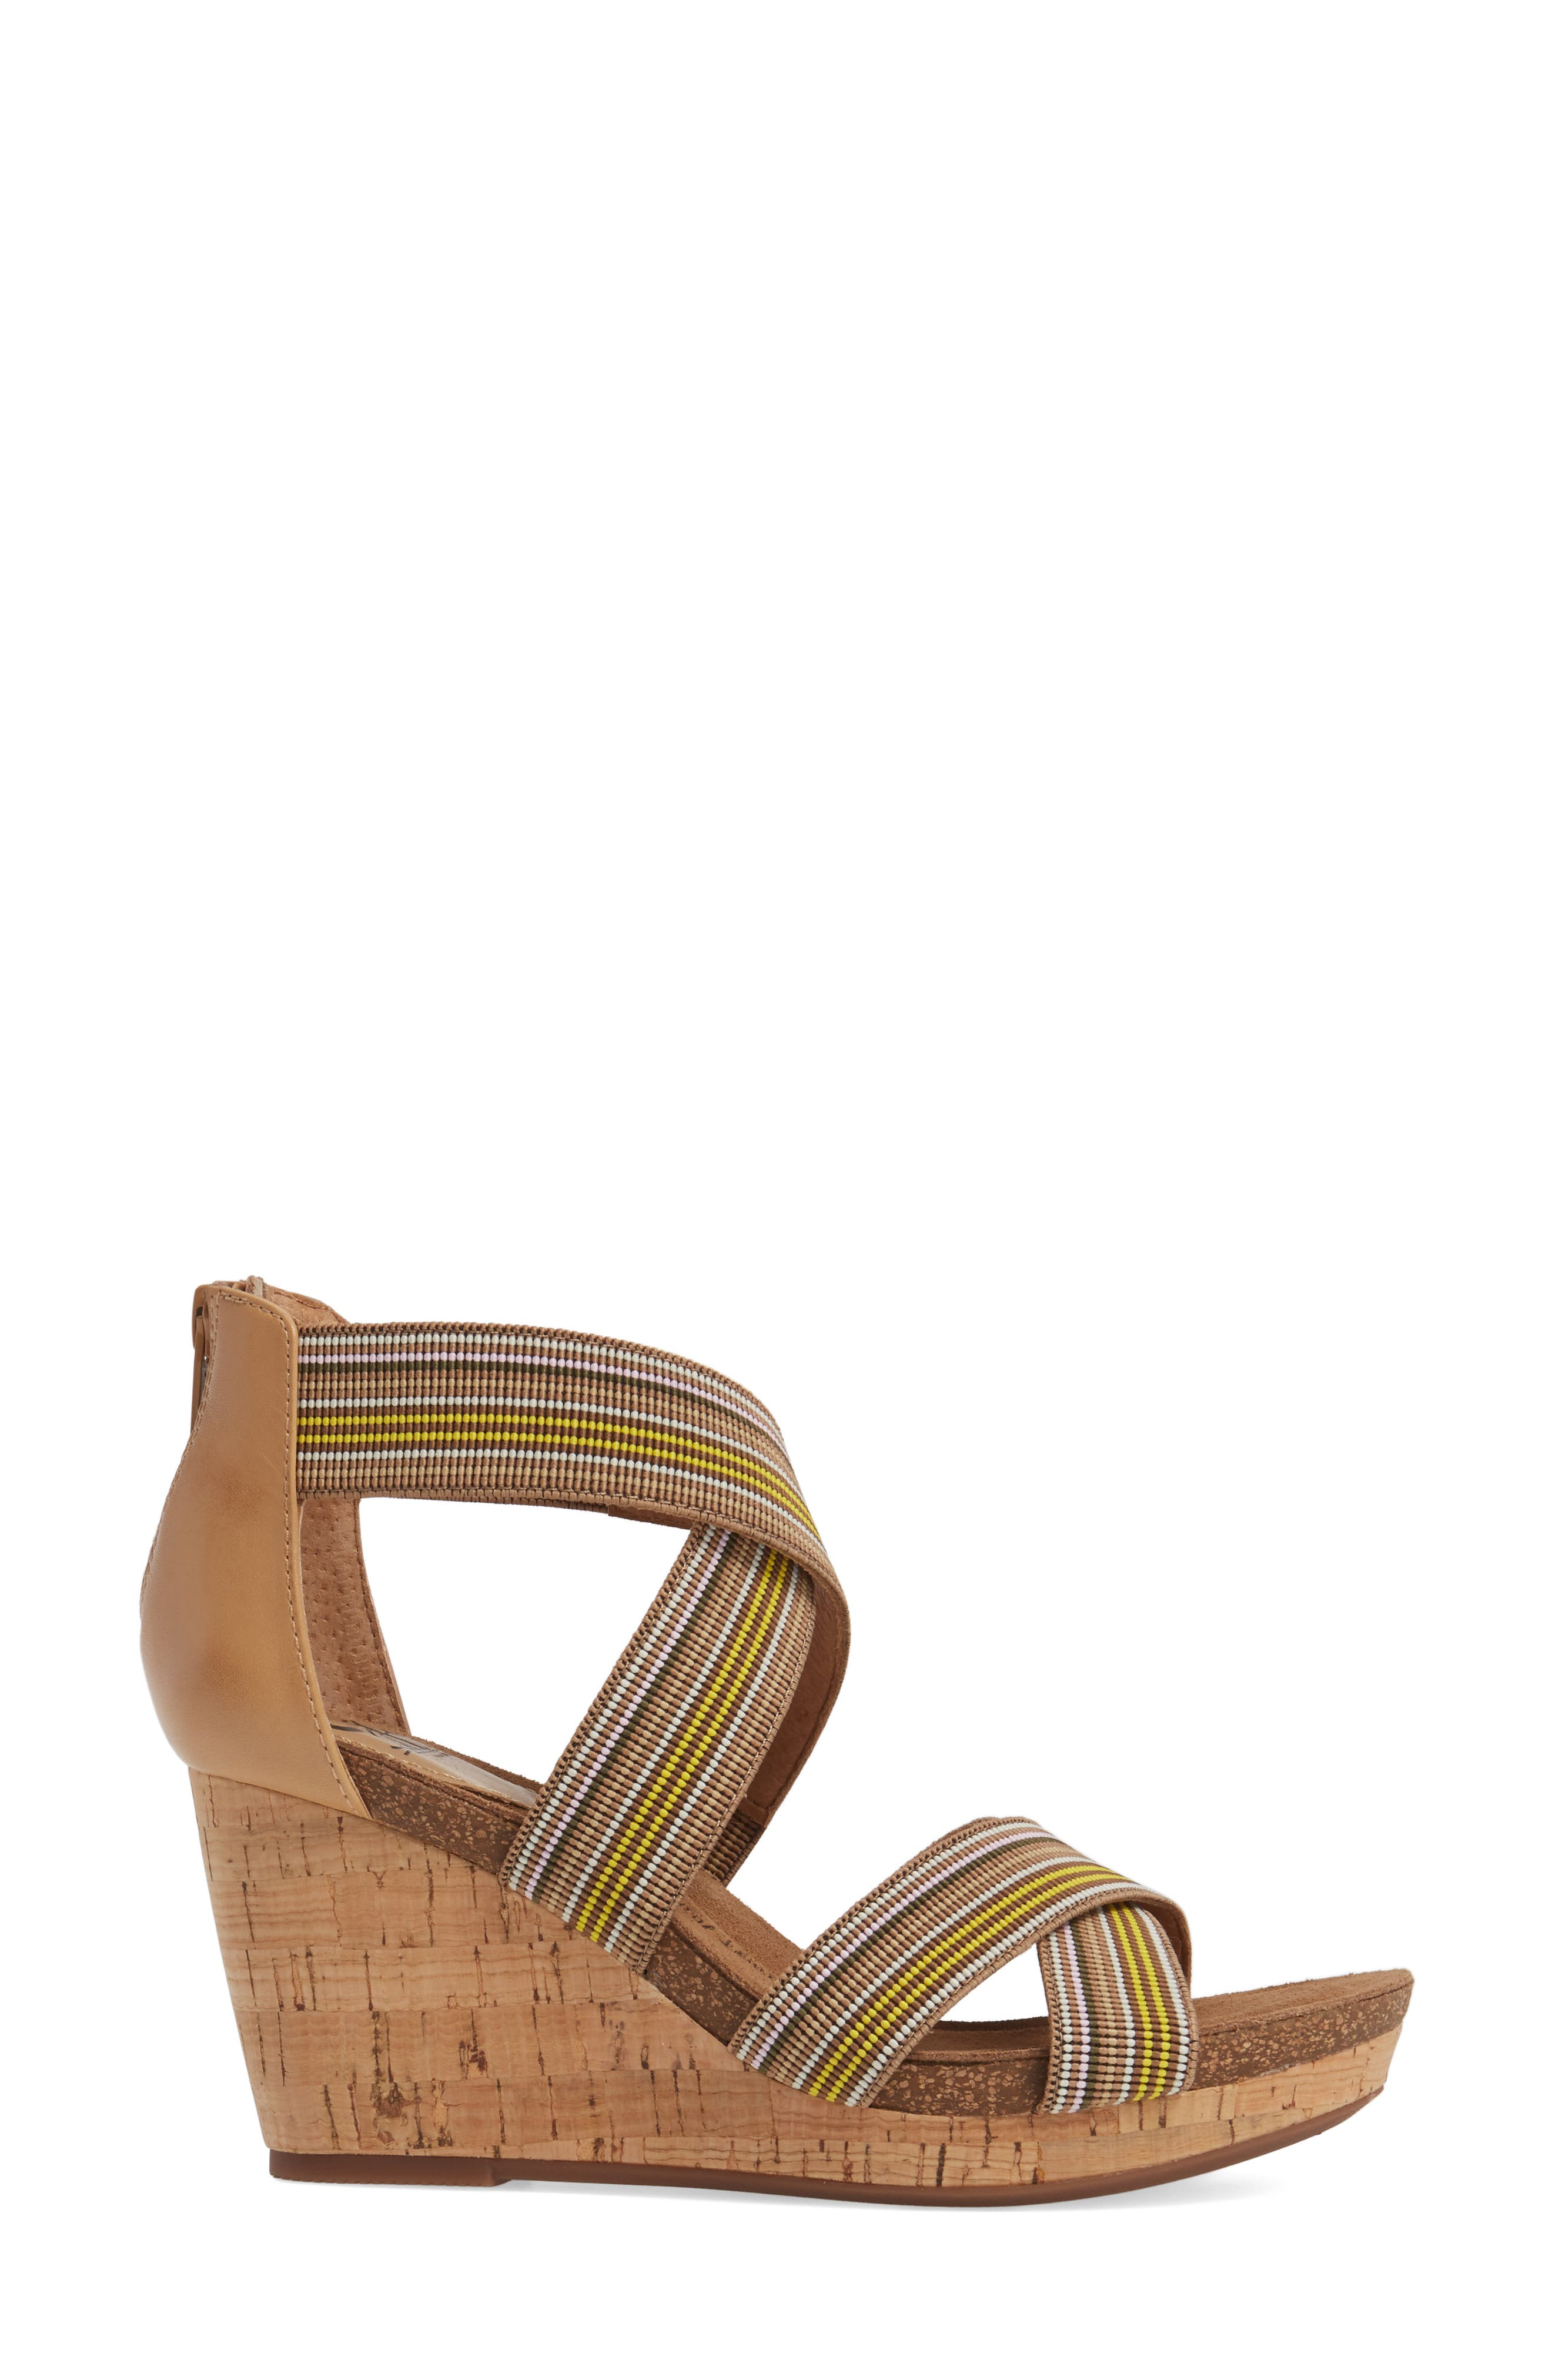 Alternate Image 3  - Söfft Cary Cross Strap Wedge Sandal (Women)